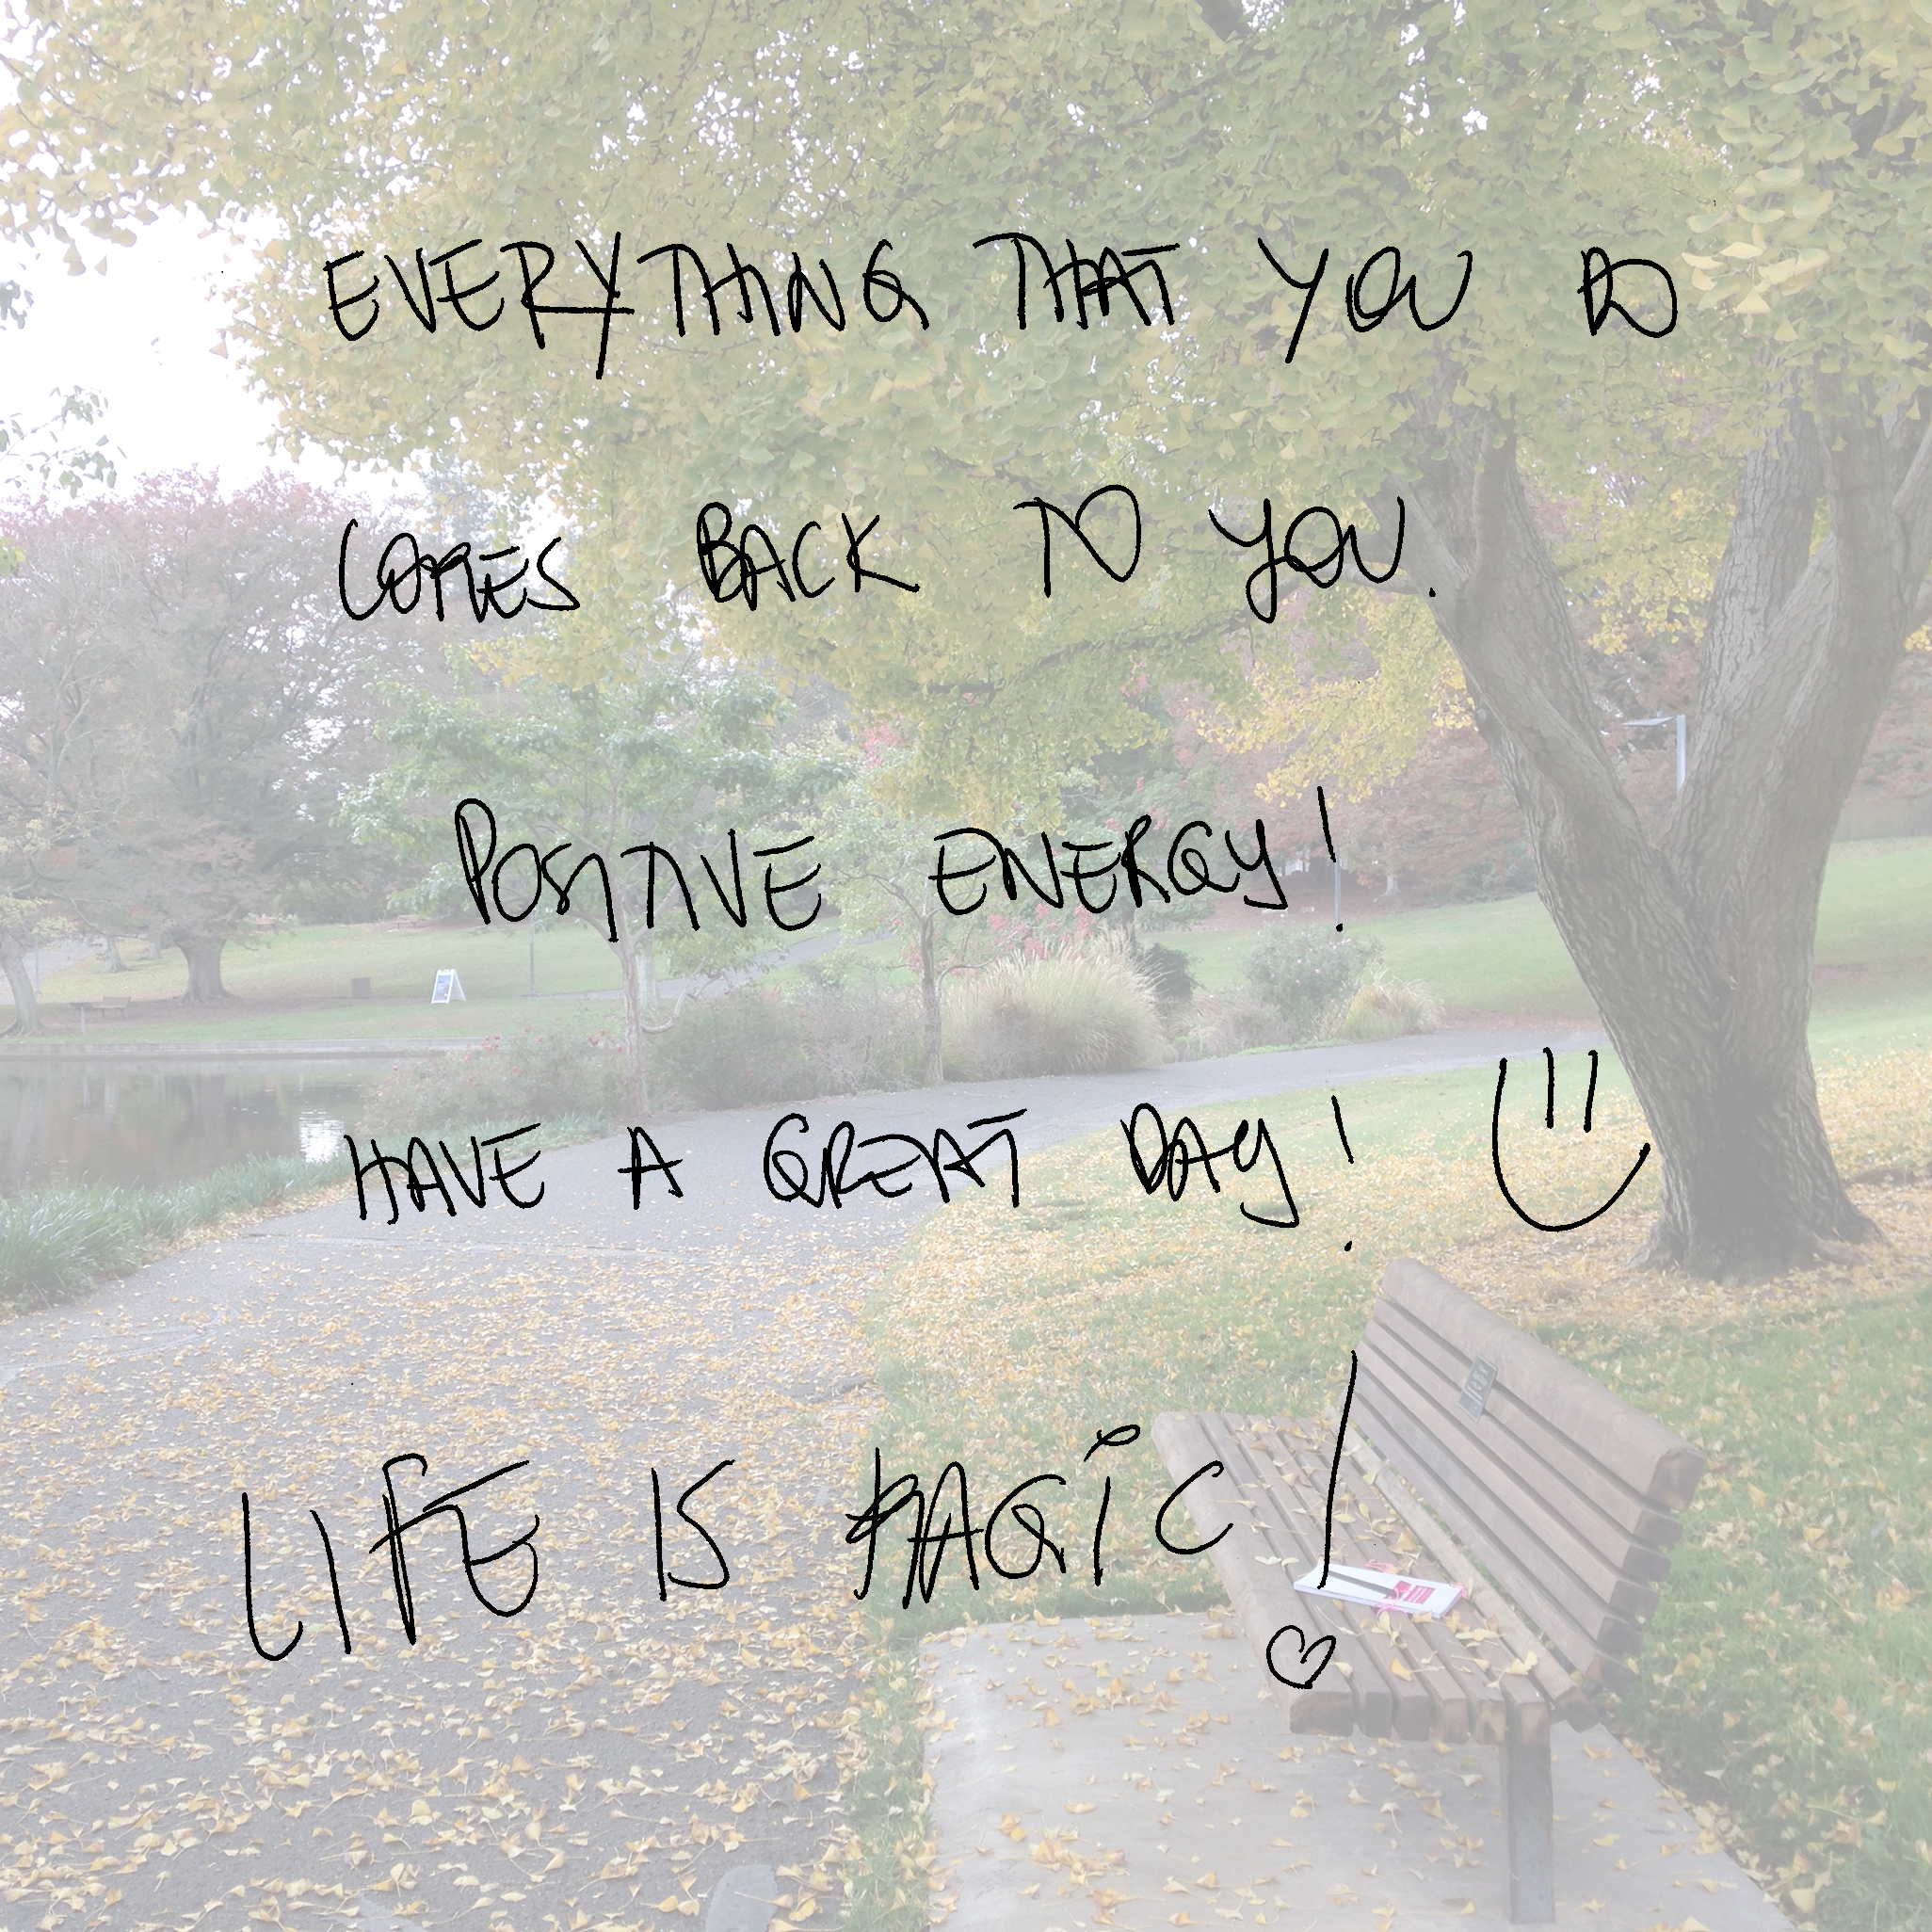 EVERYTHING THAT YOU DO COMES BACK TO YOU. POSITIVE ENERGY! HAVE A GREAT DAY! LIFE IS MAGIC!